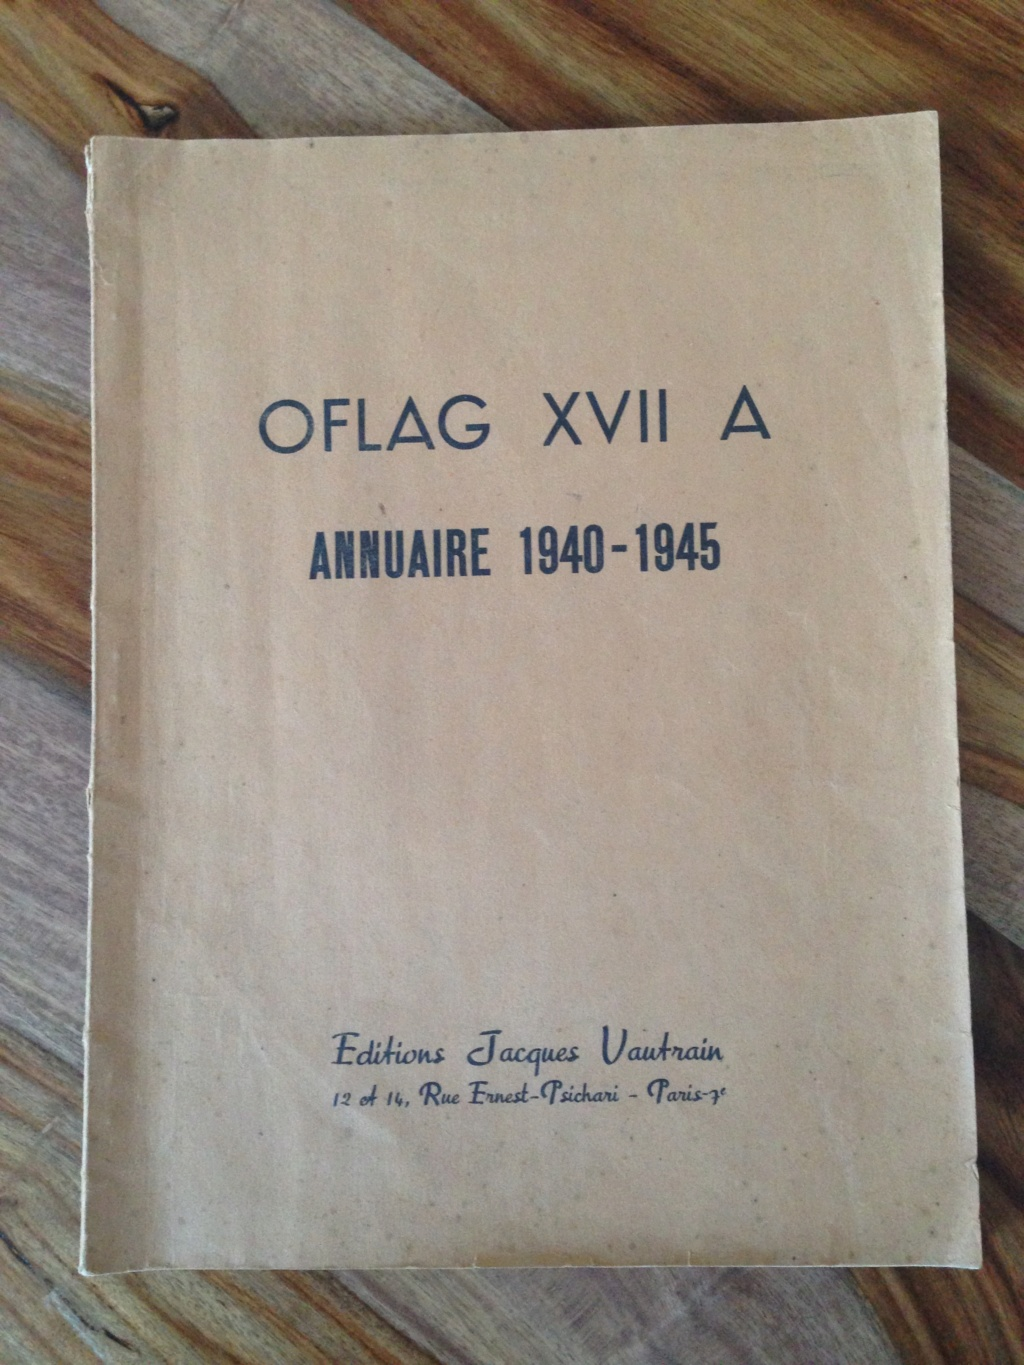 annuaire 1940-1945 OFLAG XVII A (complet, pour estimation) Img_7112